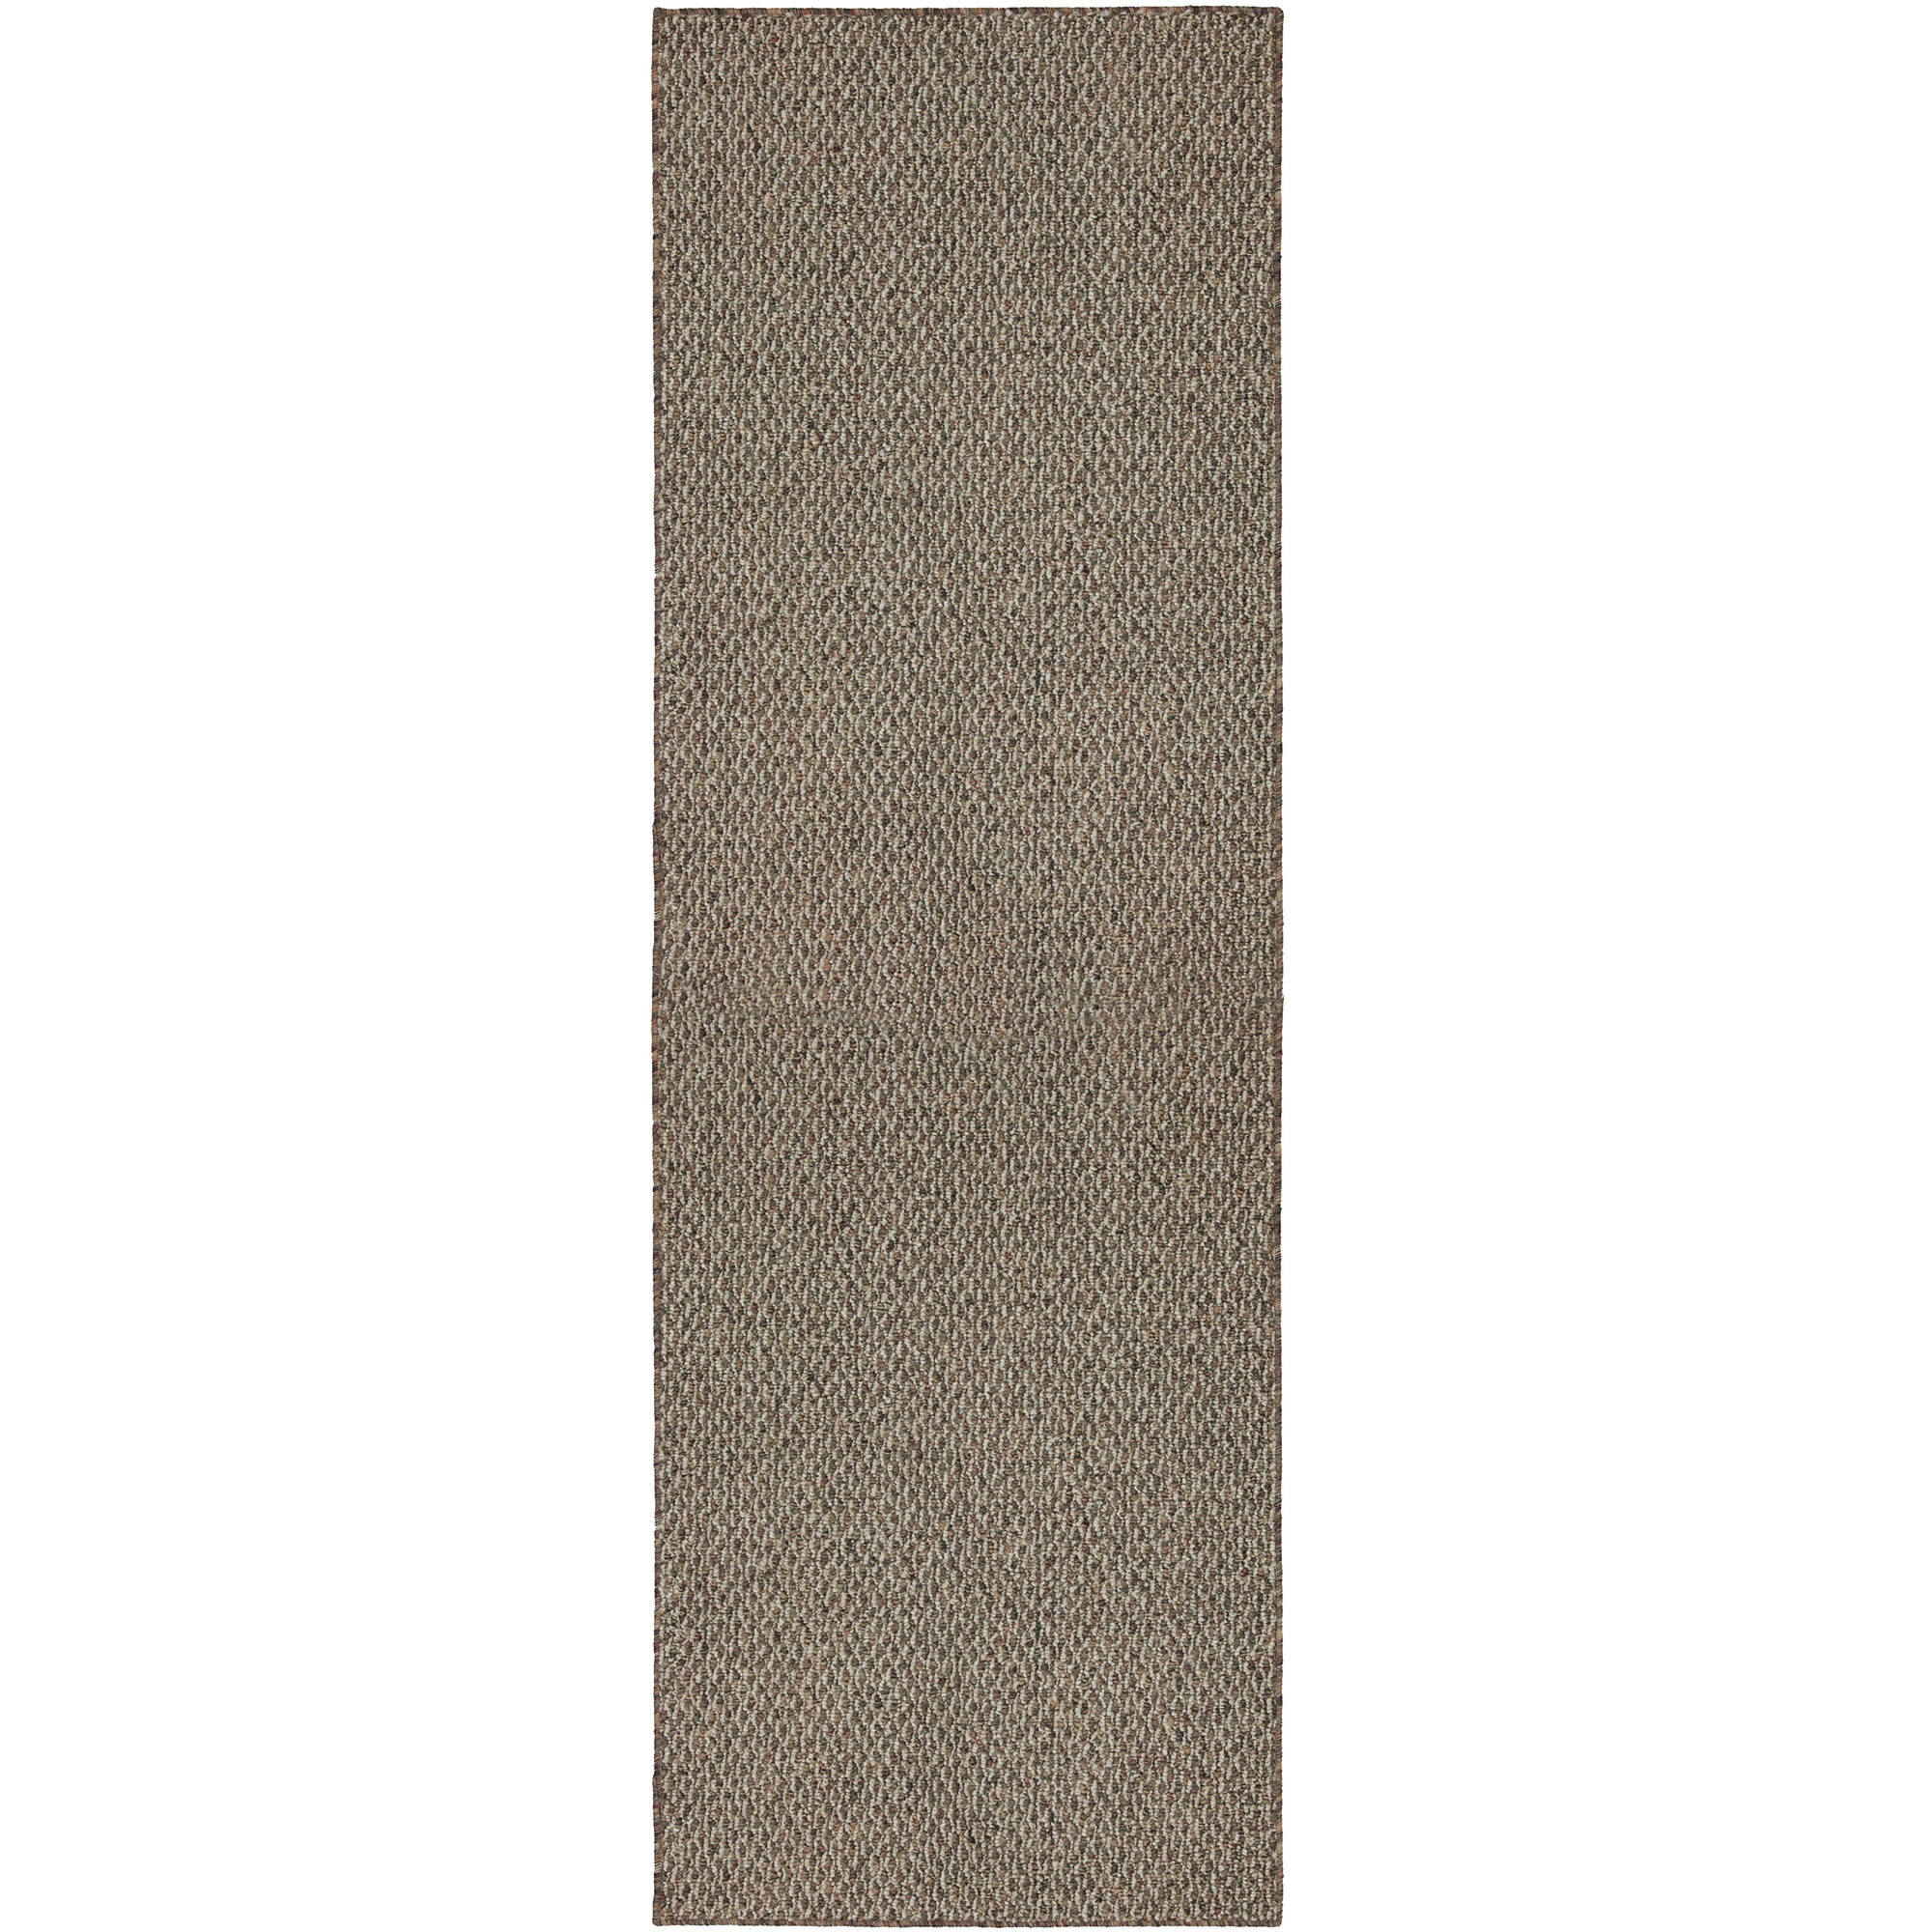 Mainstays Berber Runner Rug Available In Multiple Colors